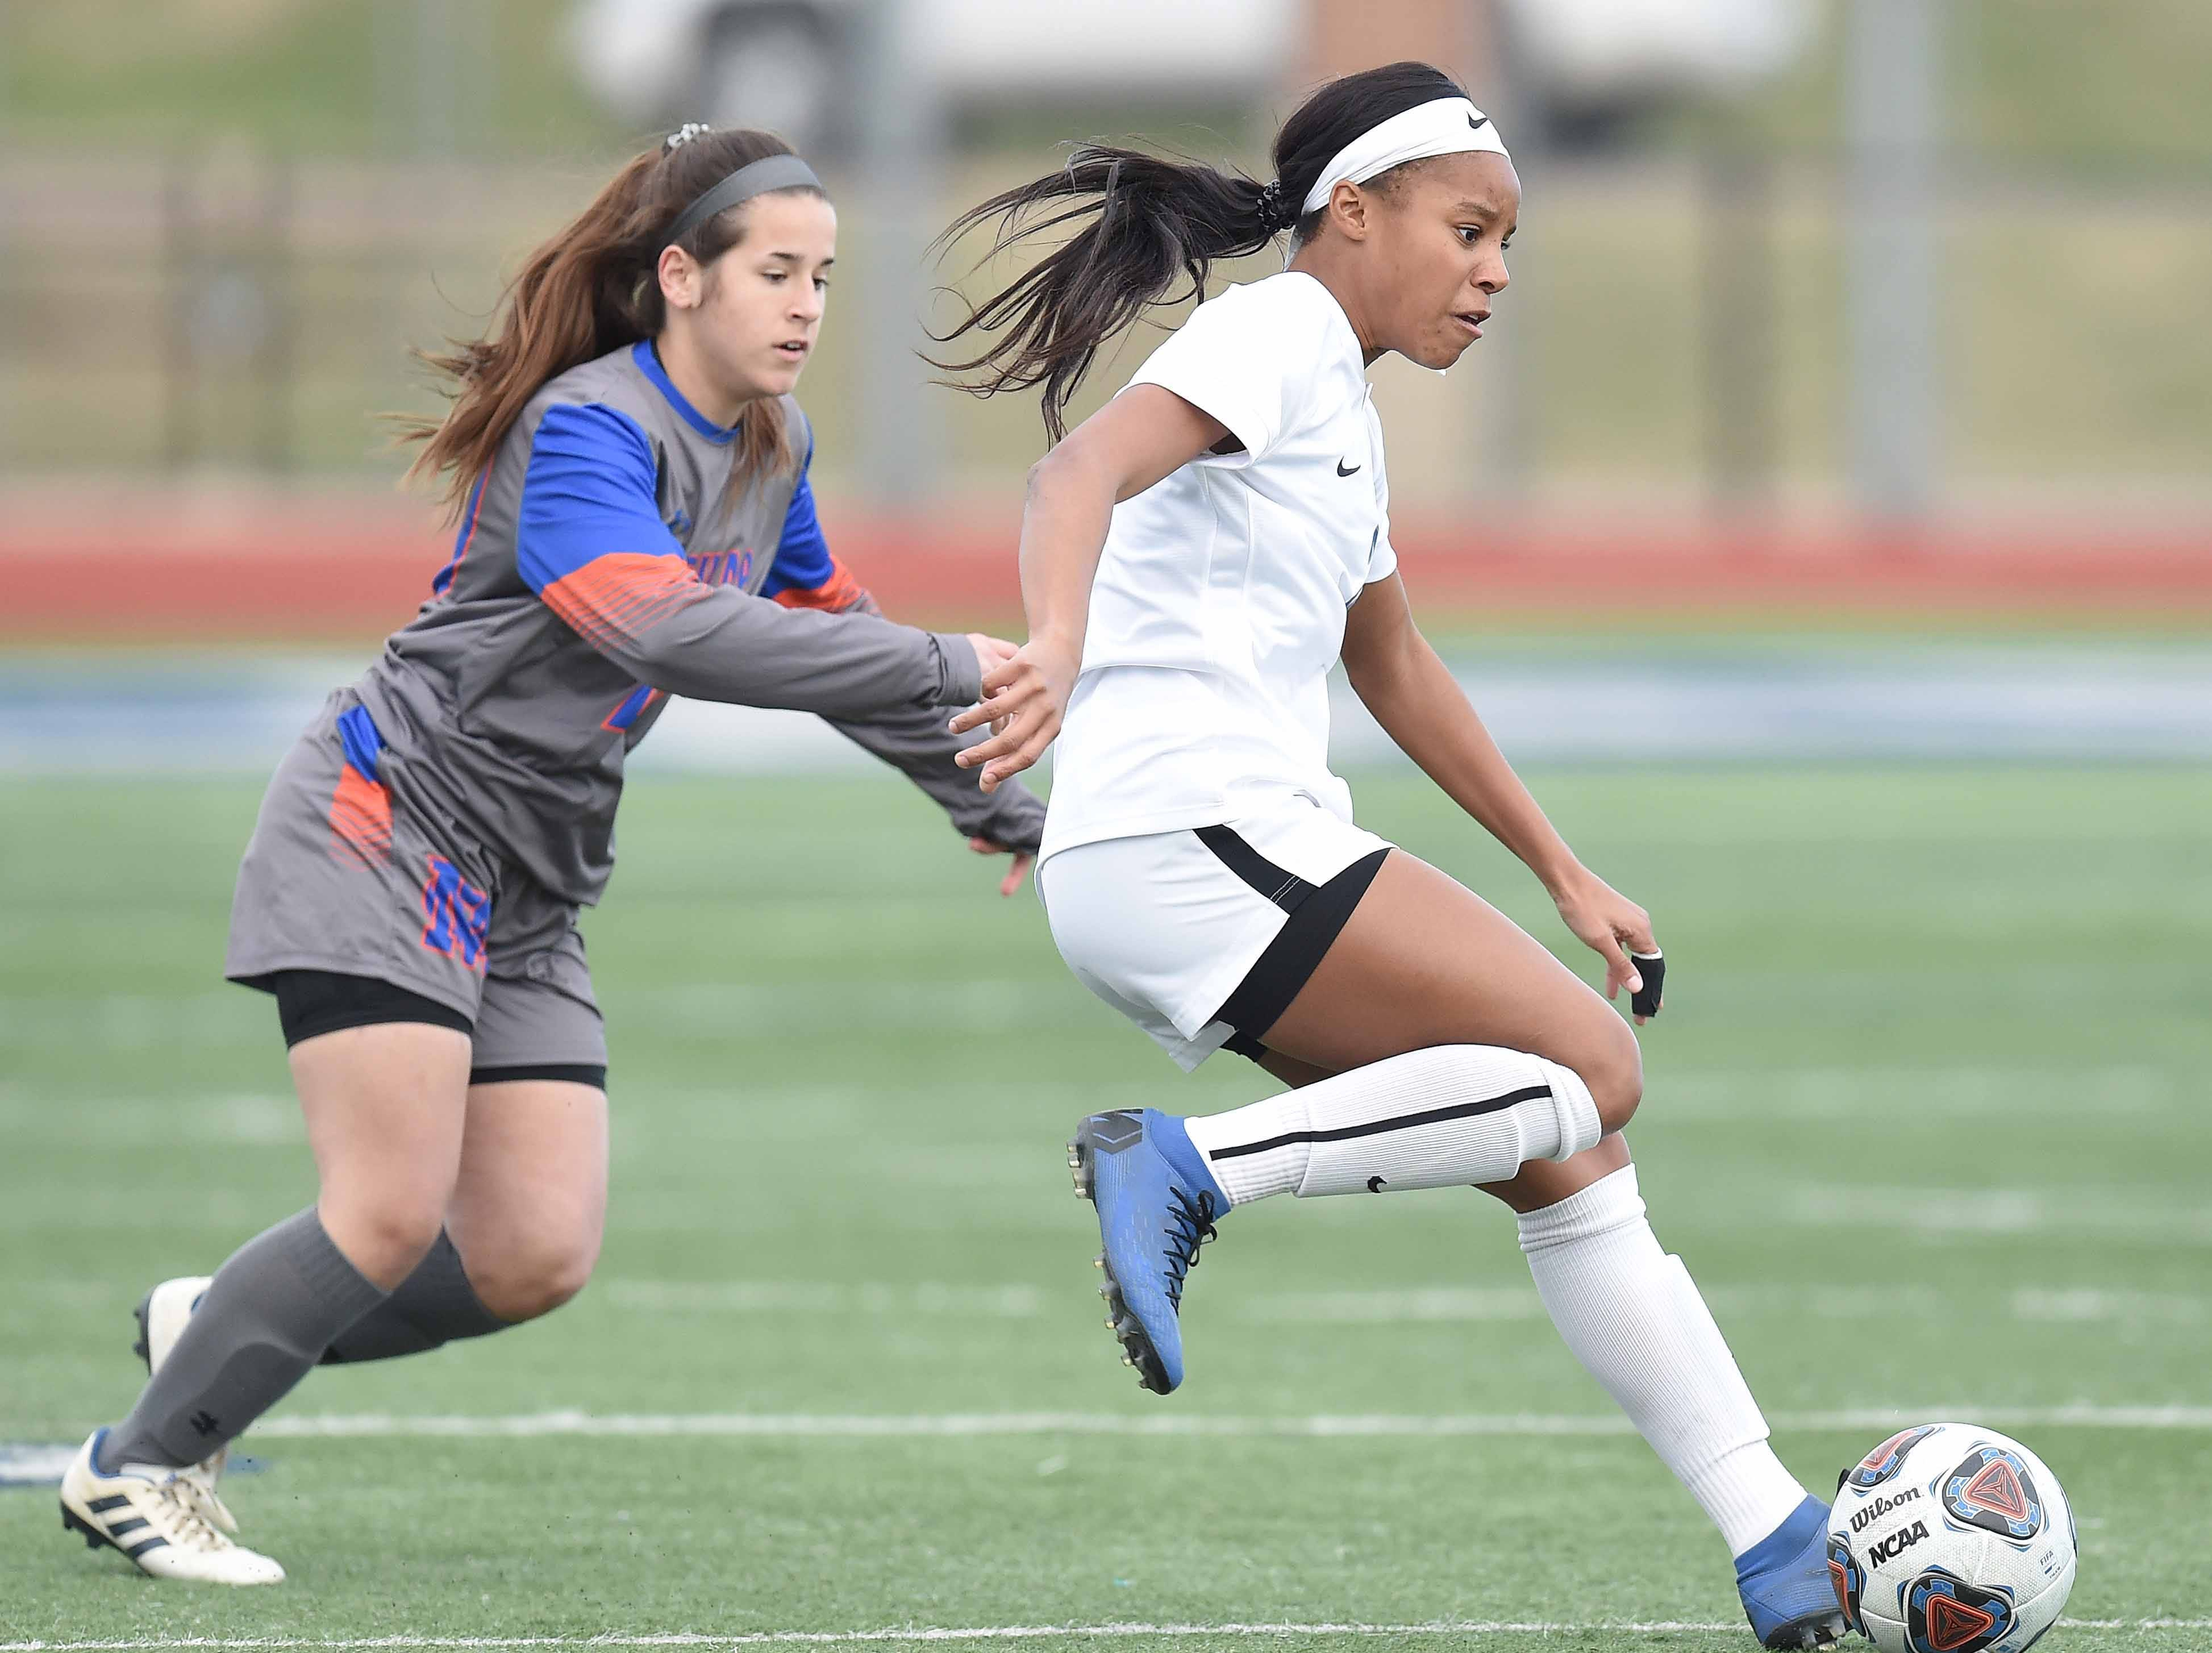 Ocean Springs' Kinsley Harmon (2) looks to pass against Madison Central in the Class 6A state championship in the MHSAA BlueCross Blue Shield of Mississippi Soccer Classic on Saturday, February 9, 2019, at Ridgeland High School in Ridgeland, Miss.